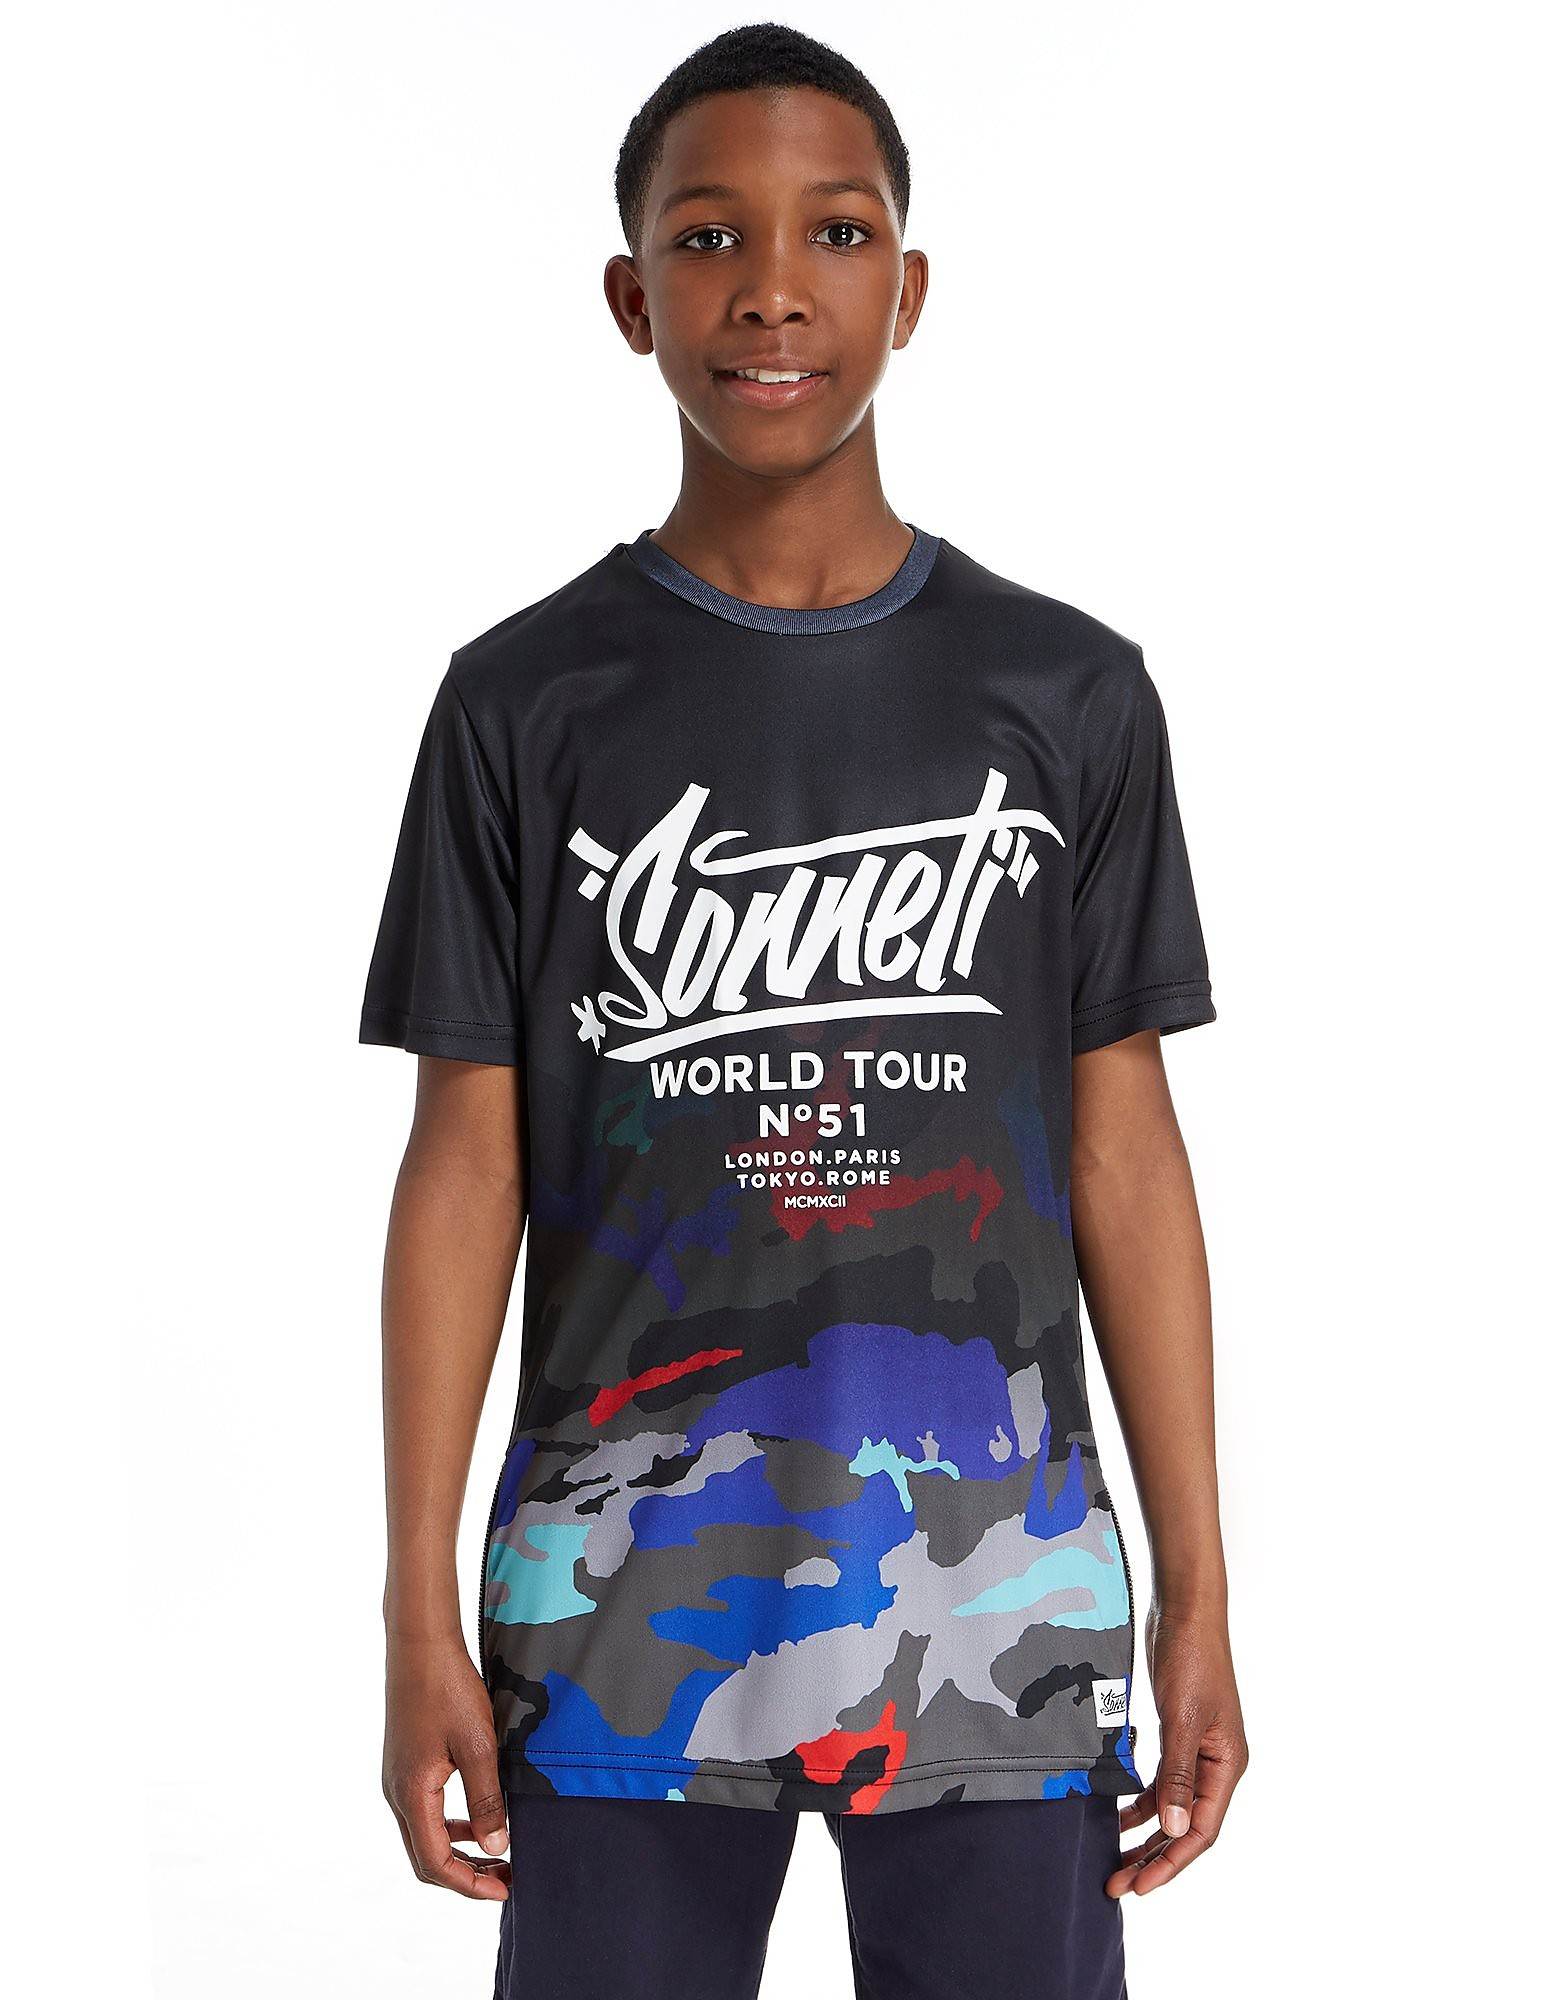 Sonneti Pade T-Shirt Junior